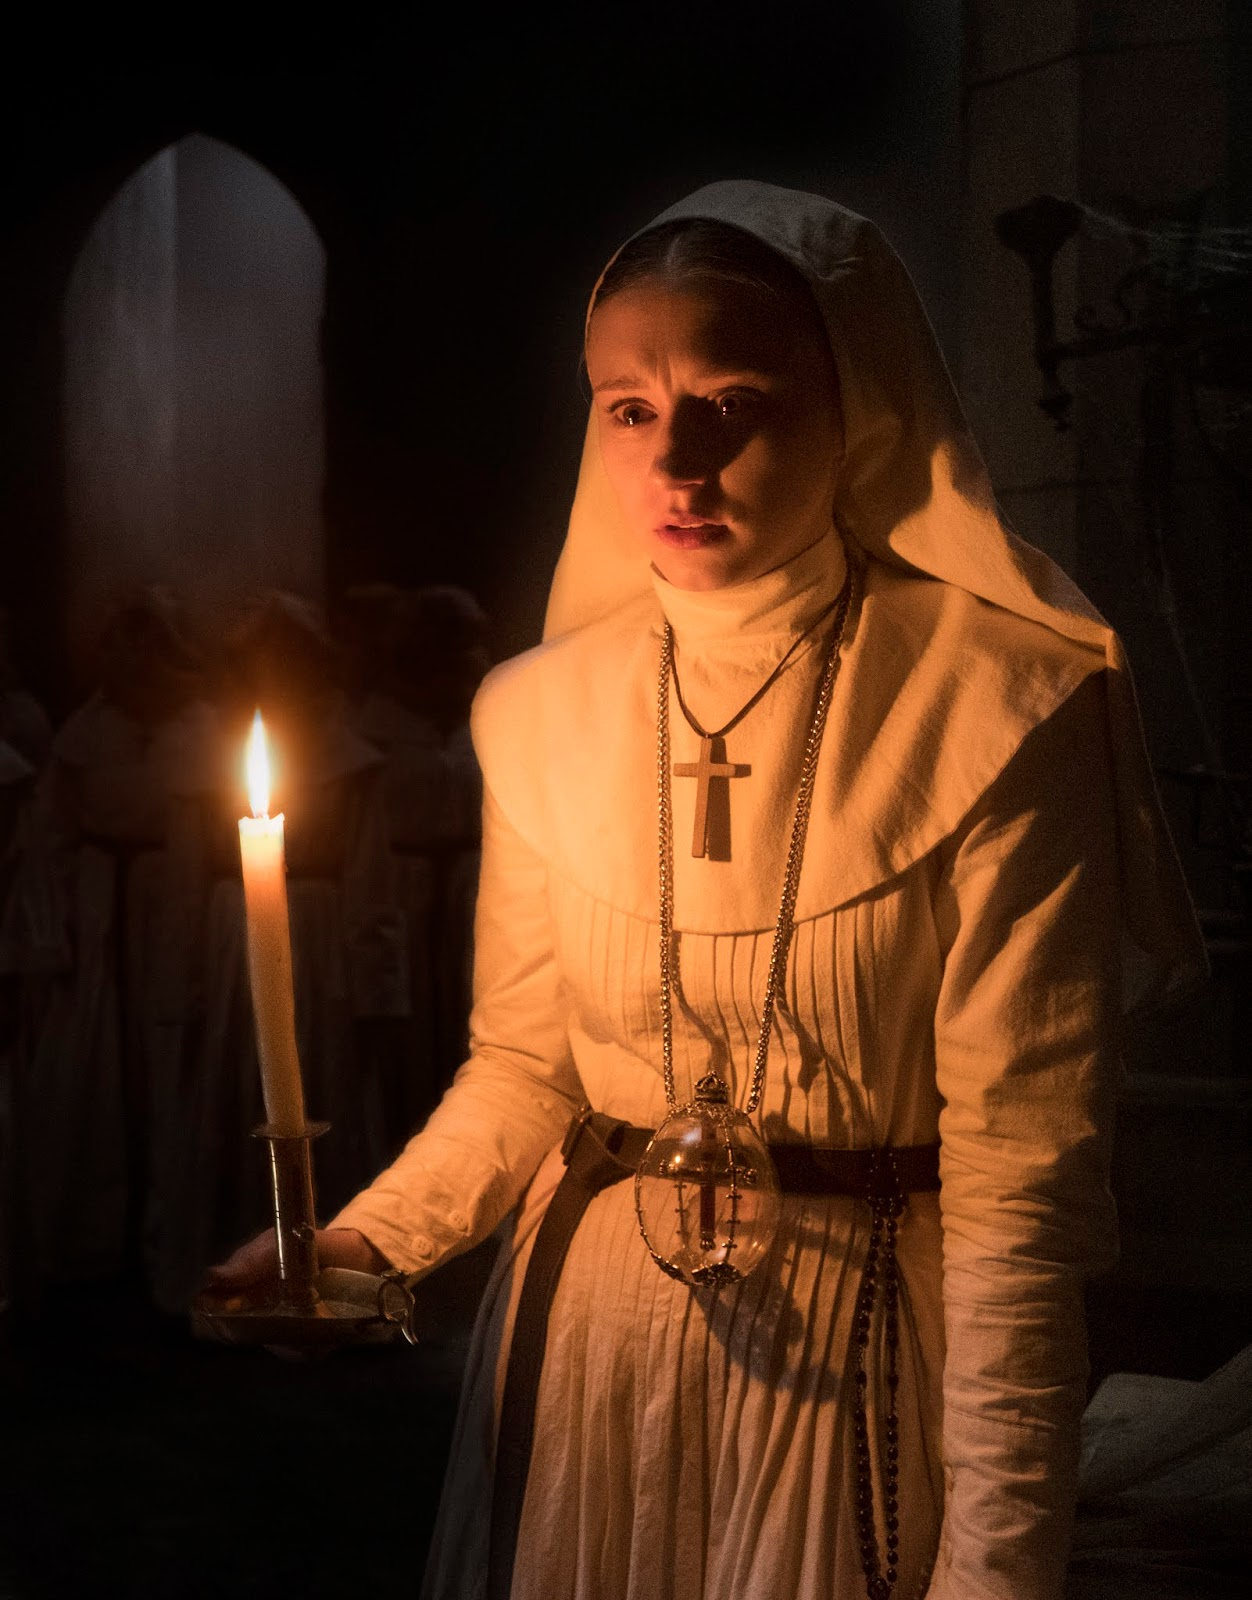 Beware Of The Nun Ear Candle Indian Per Batang Farmiga Responds Working With Corin Was Amazing Because Hes So Artistic And Creative Good At Getting To Emotional Fear